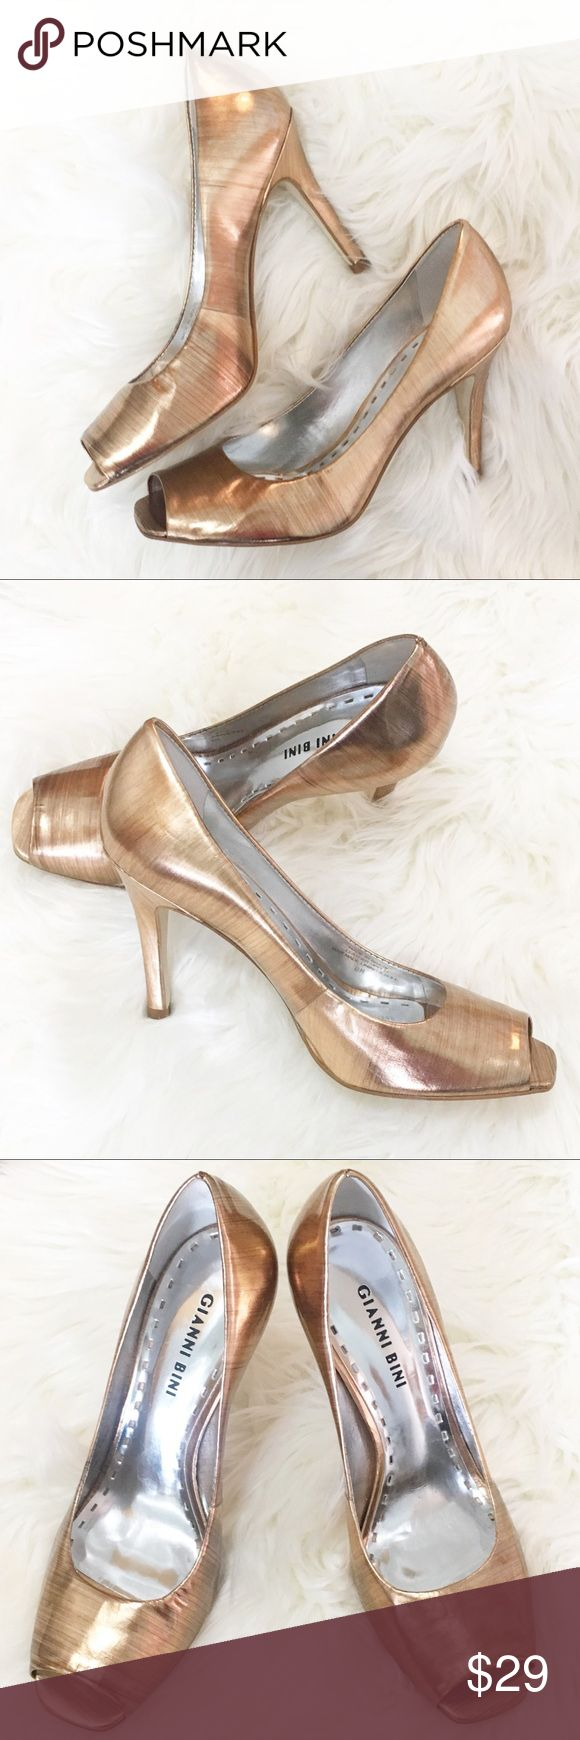 """Metallic Gold Open Toe Pumps Unique peep toe heels. Great condition with wear on soles. Shiny patent leather. 4"""" heel. Offers are welcome ☺️ Gianni Bini Shoes Heels"""